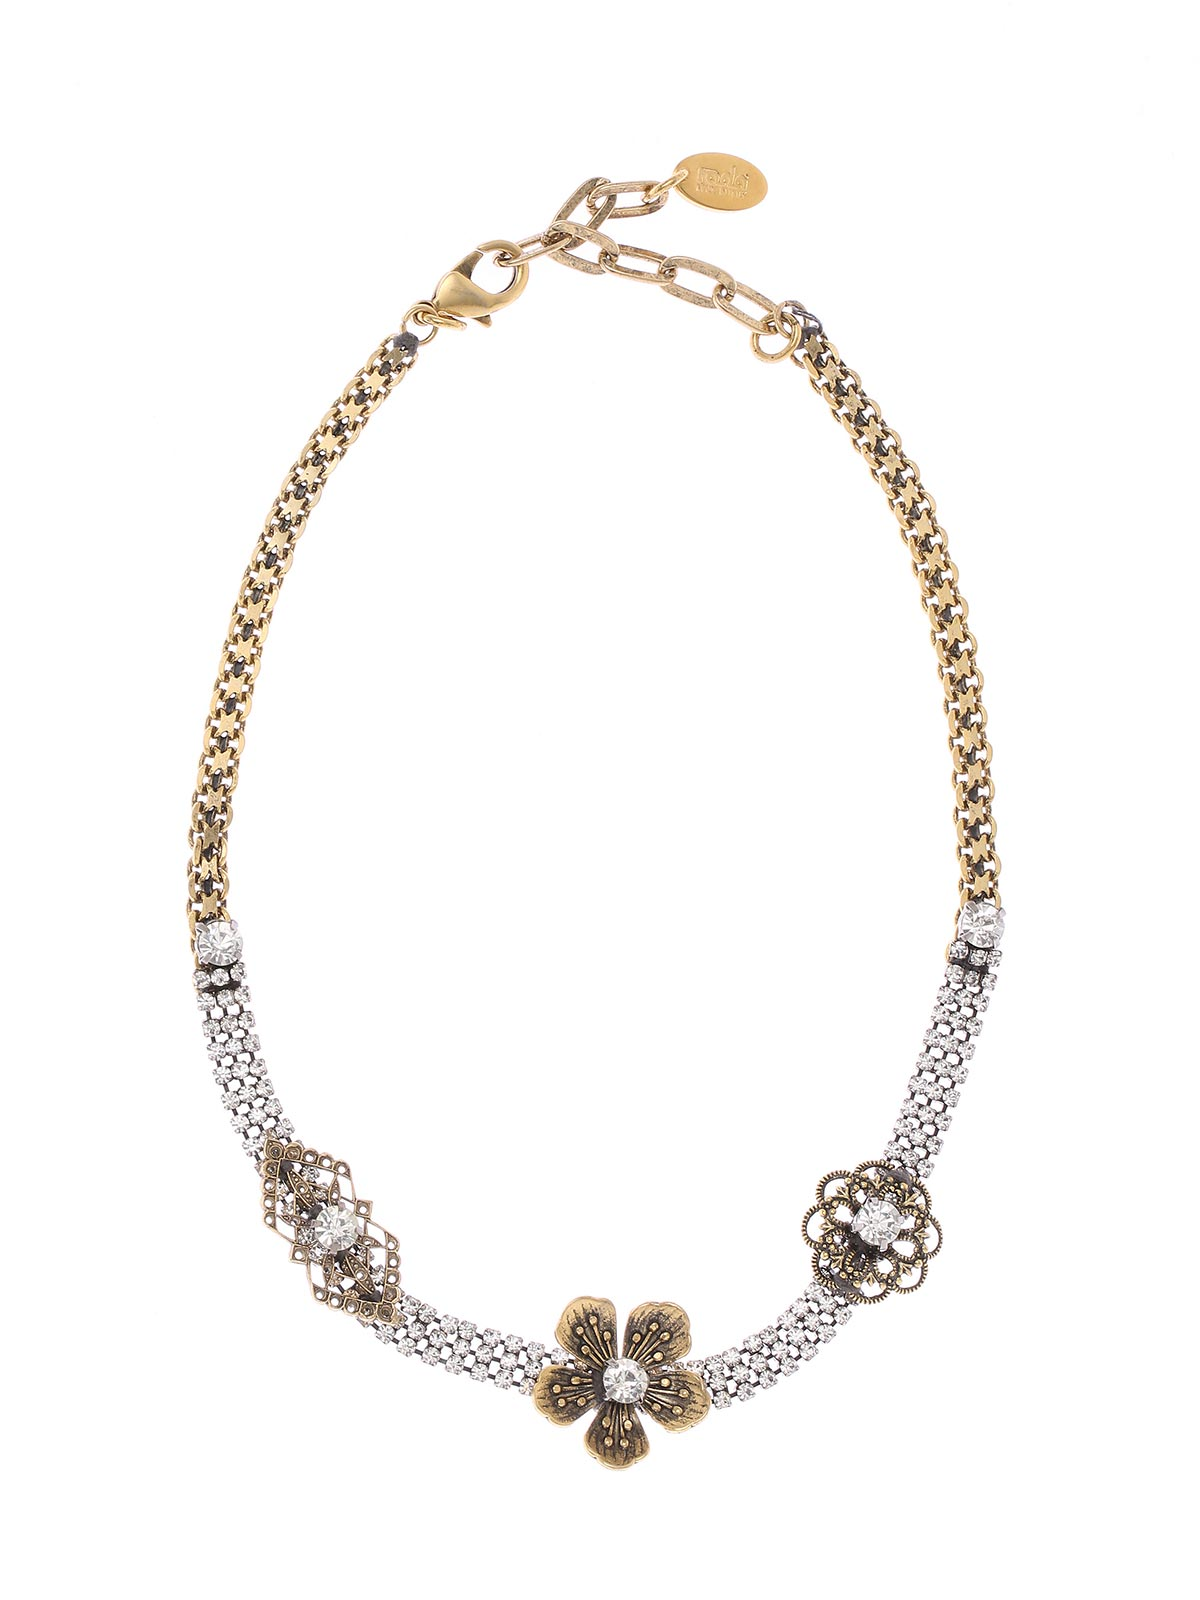 Brass and crystal necklace with floral decorations